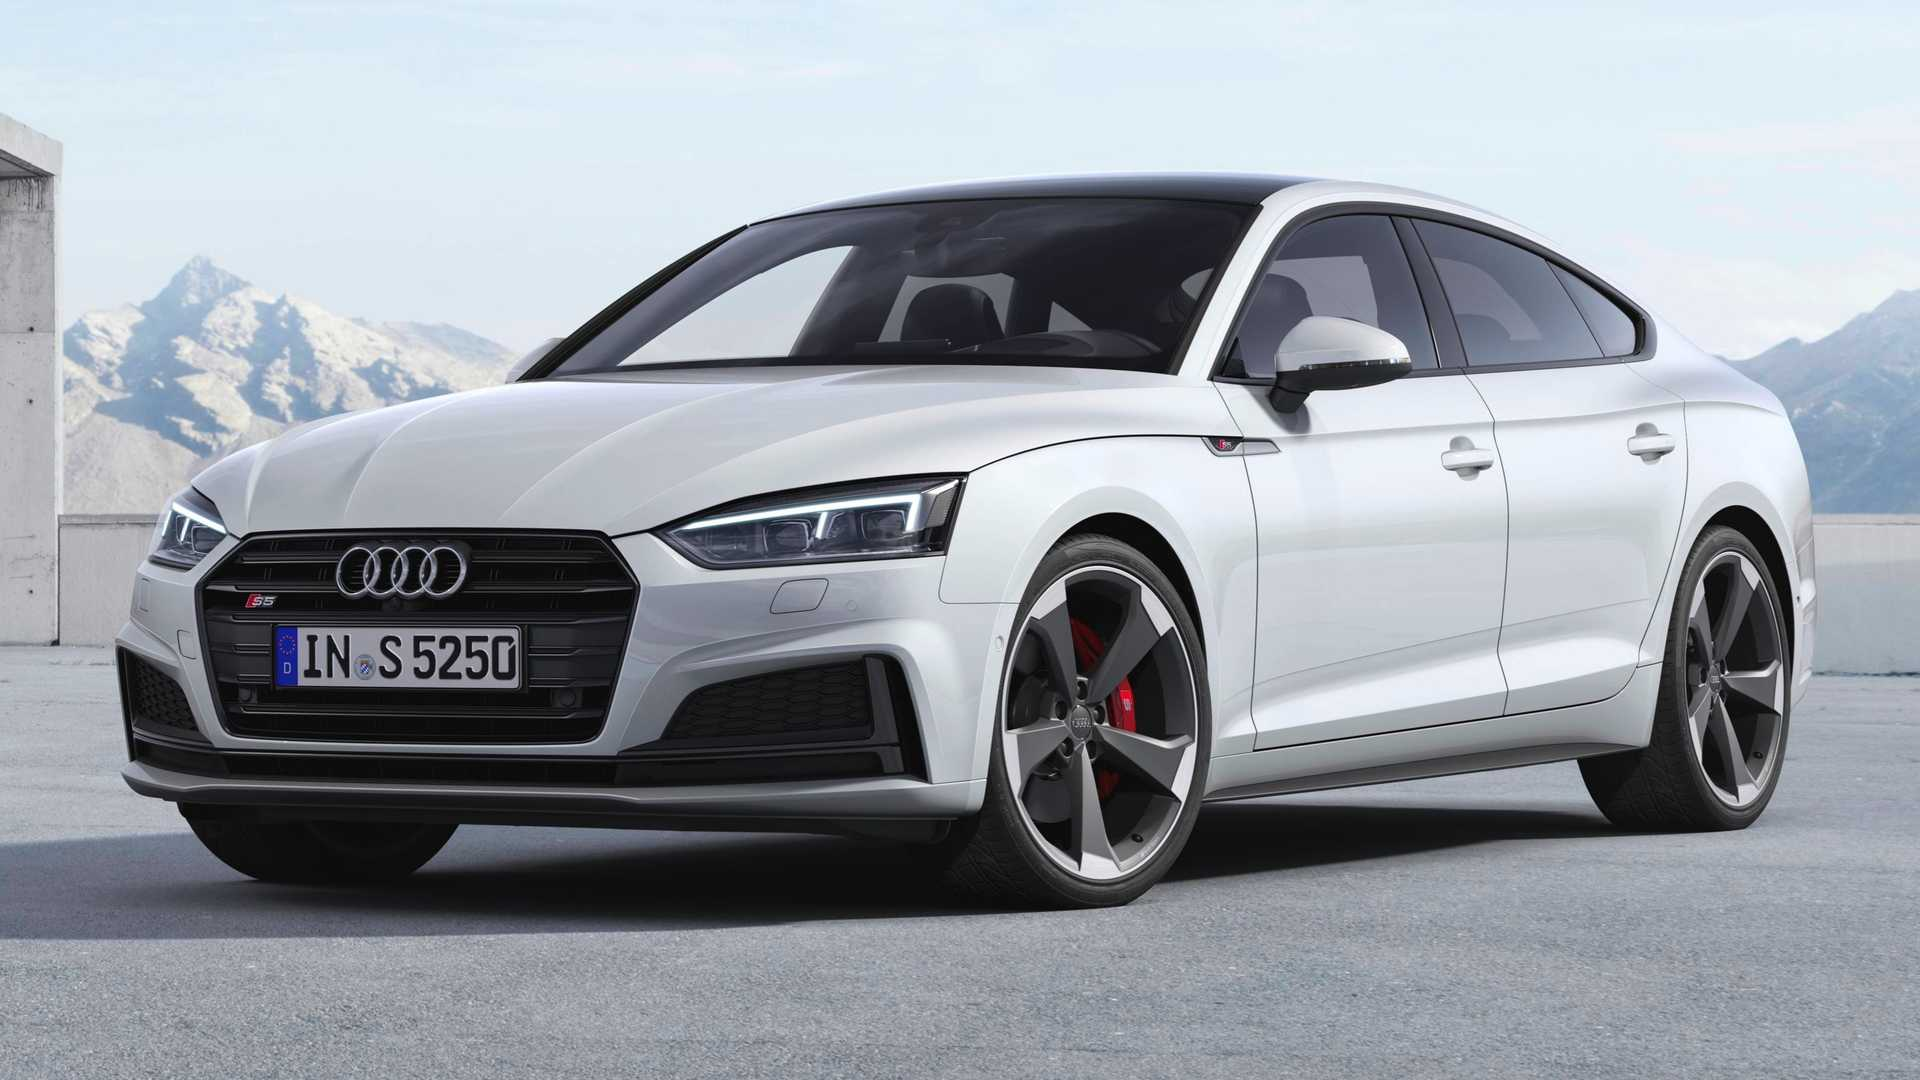 14 All New 2019 Audi S5 Cabriolet Rumors